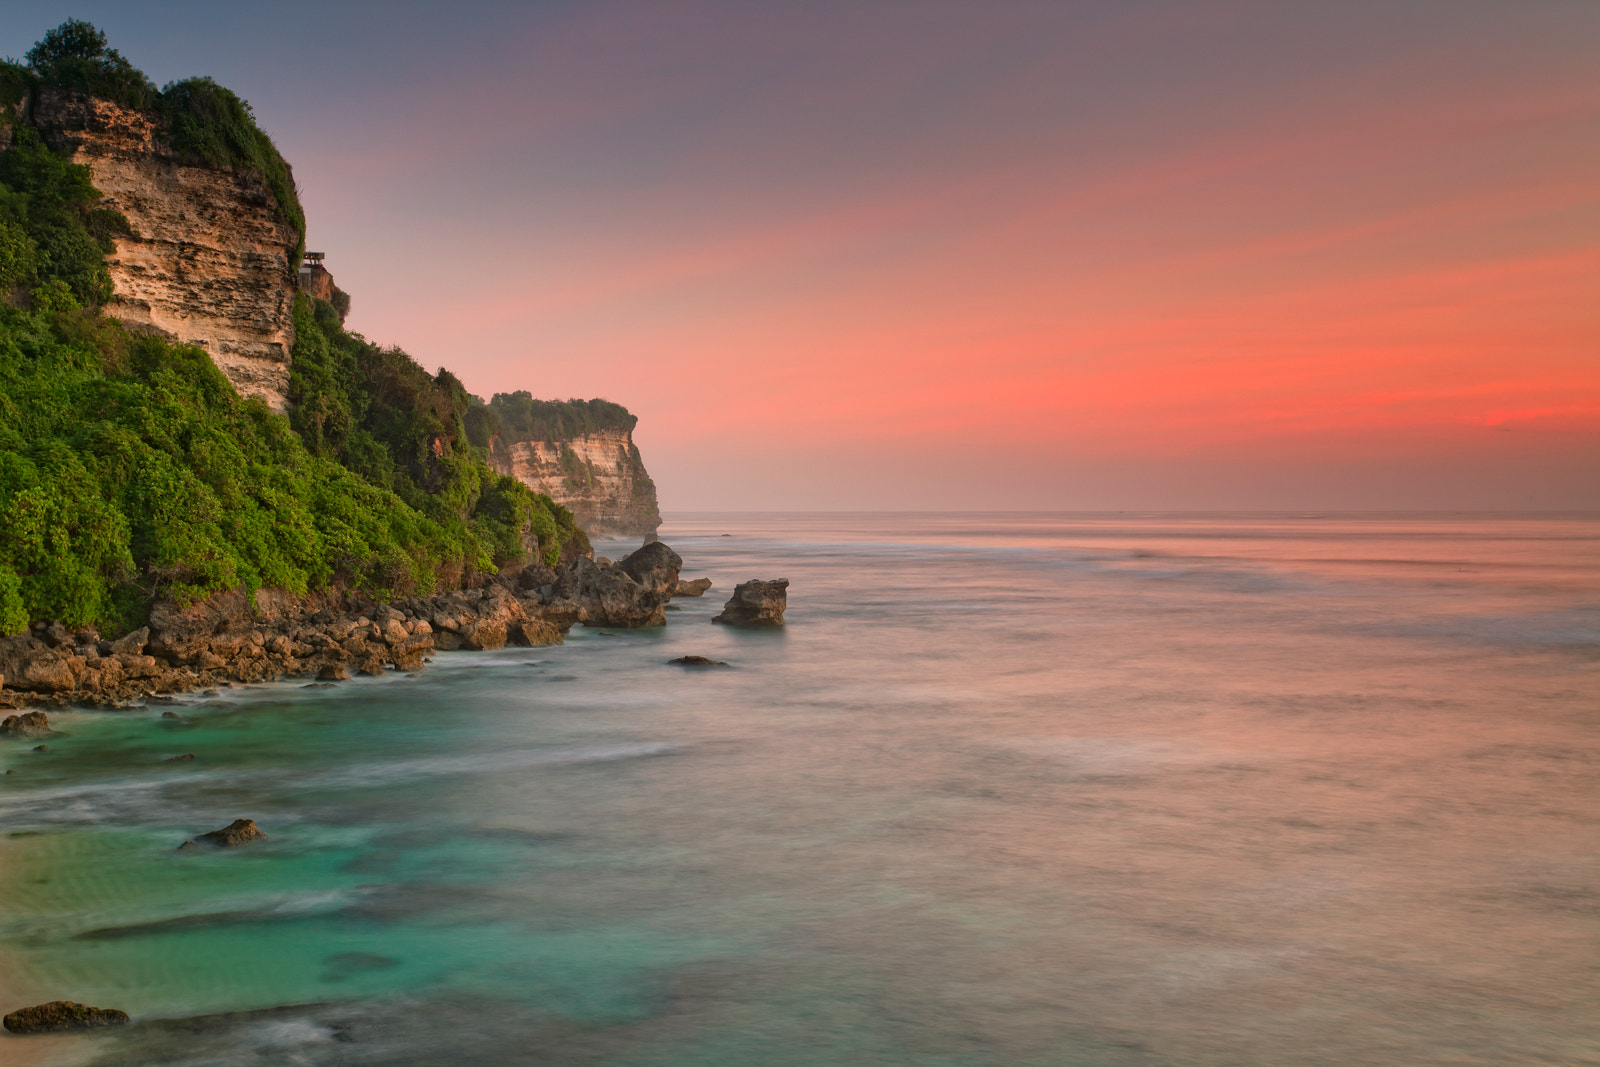 Photograph Blue Point,Bali by Helminadia Ranford on 500px